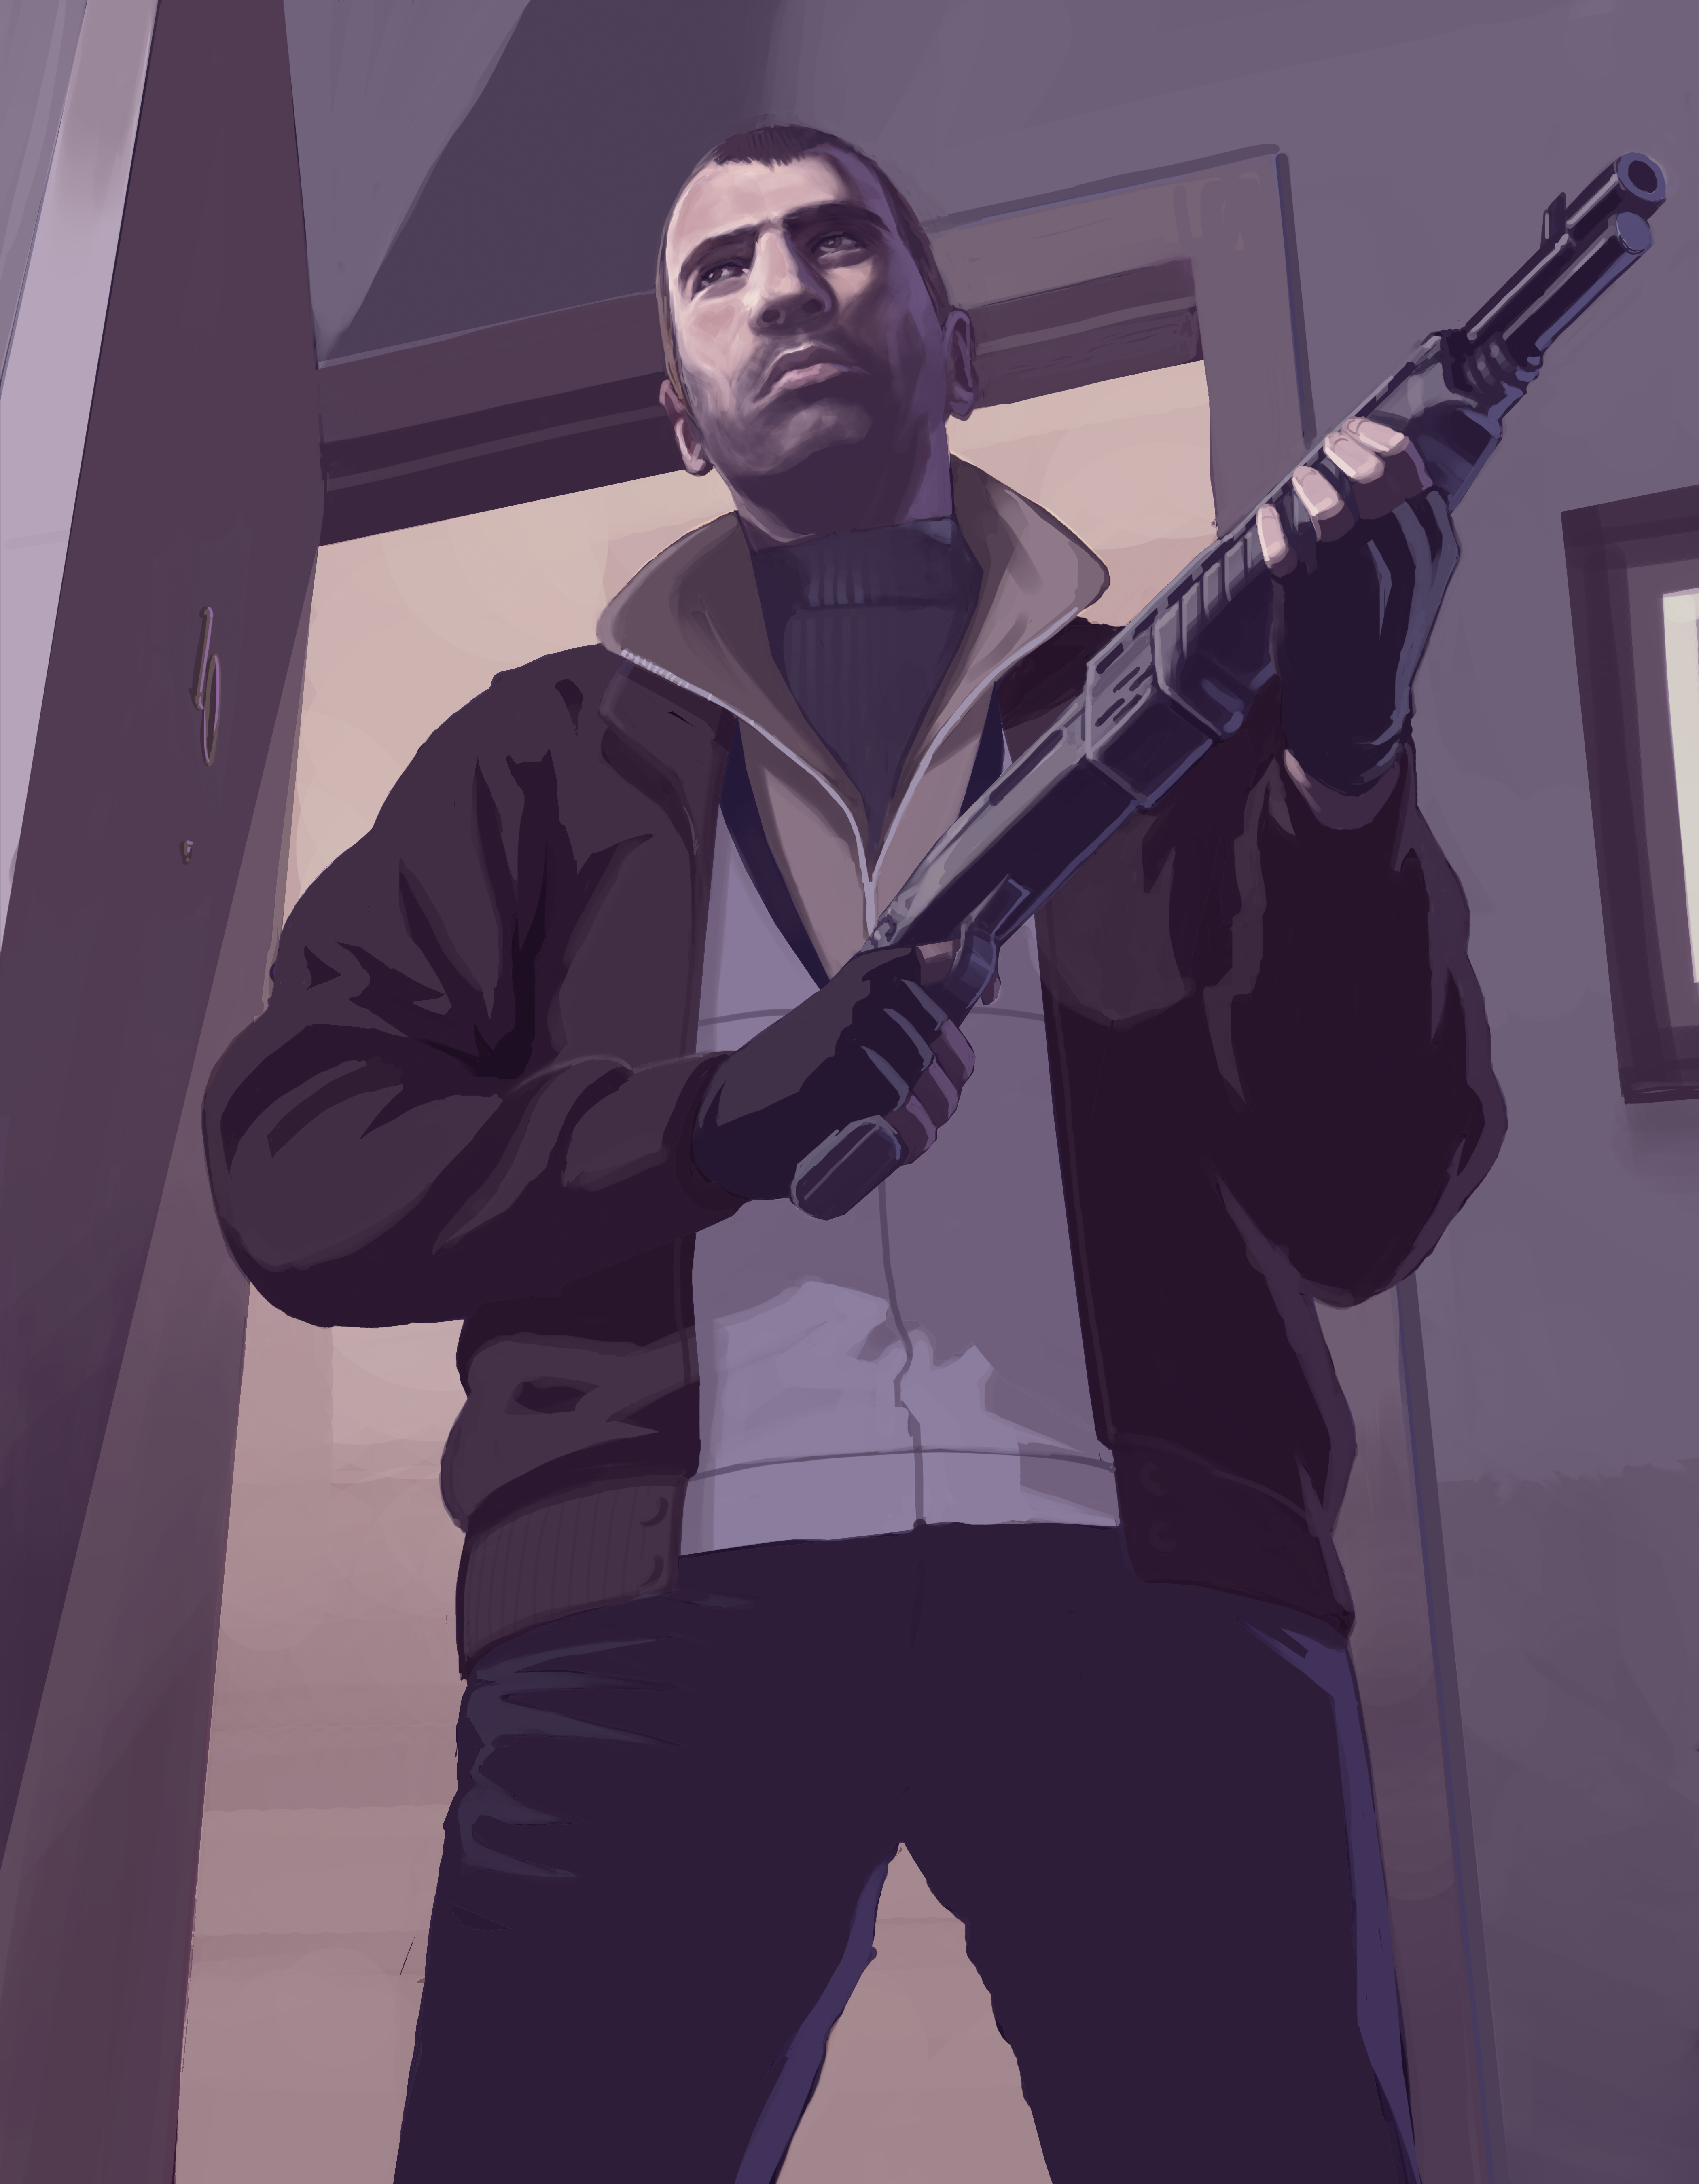 grand-theft-auto game gta Character HD Wallpaper